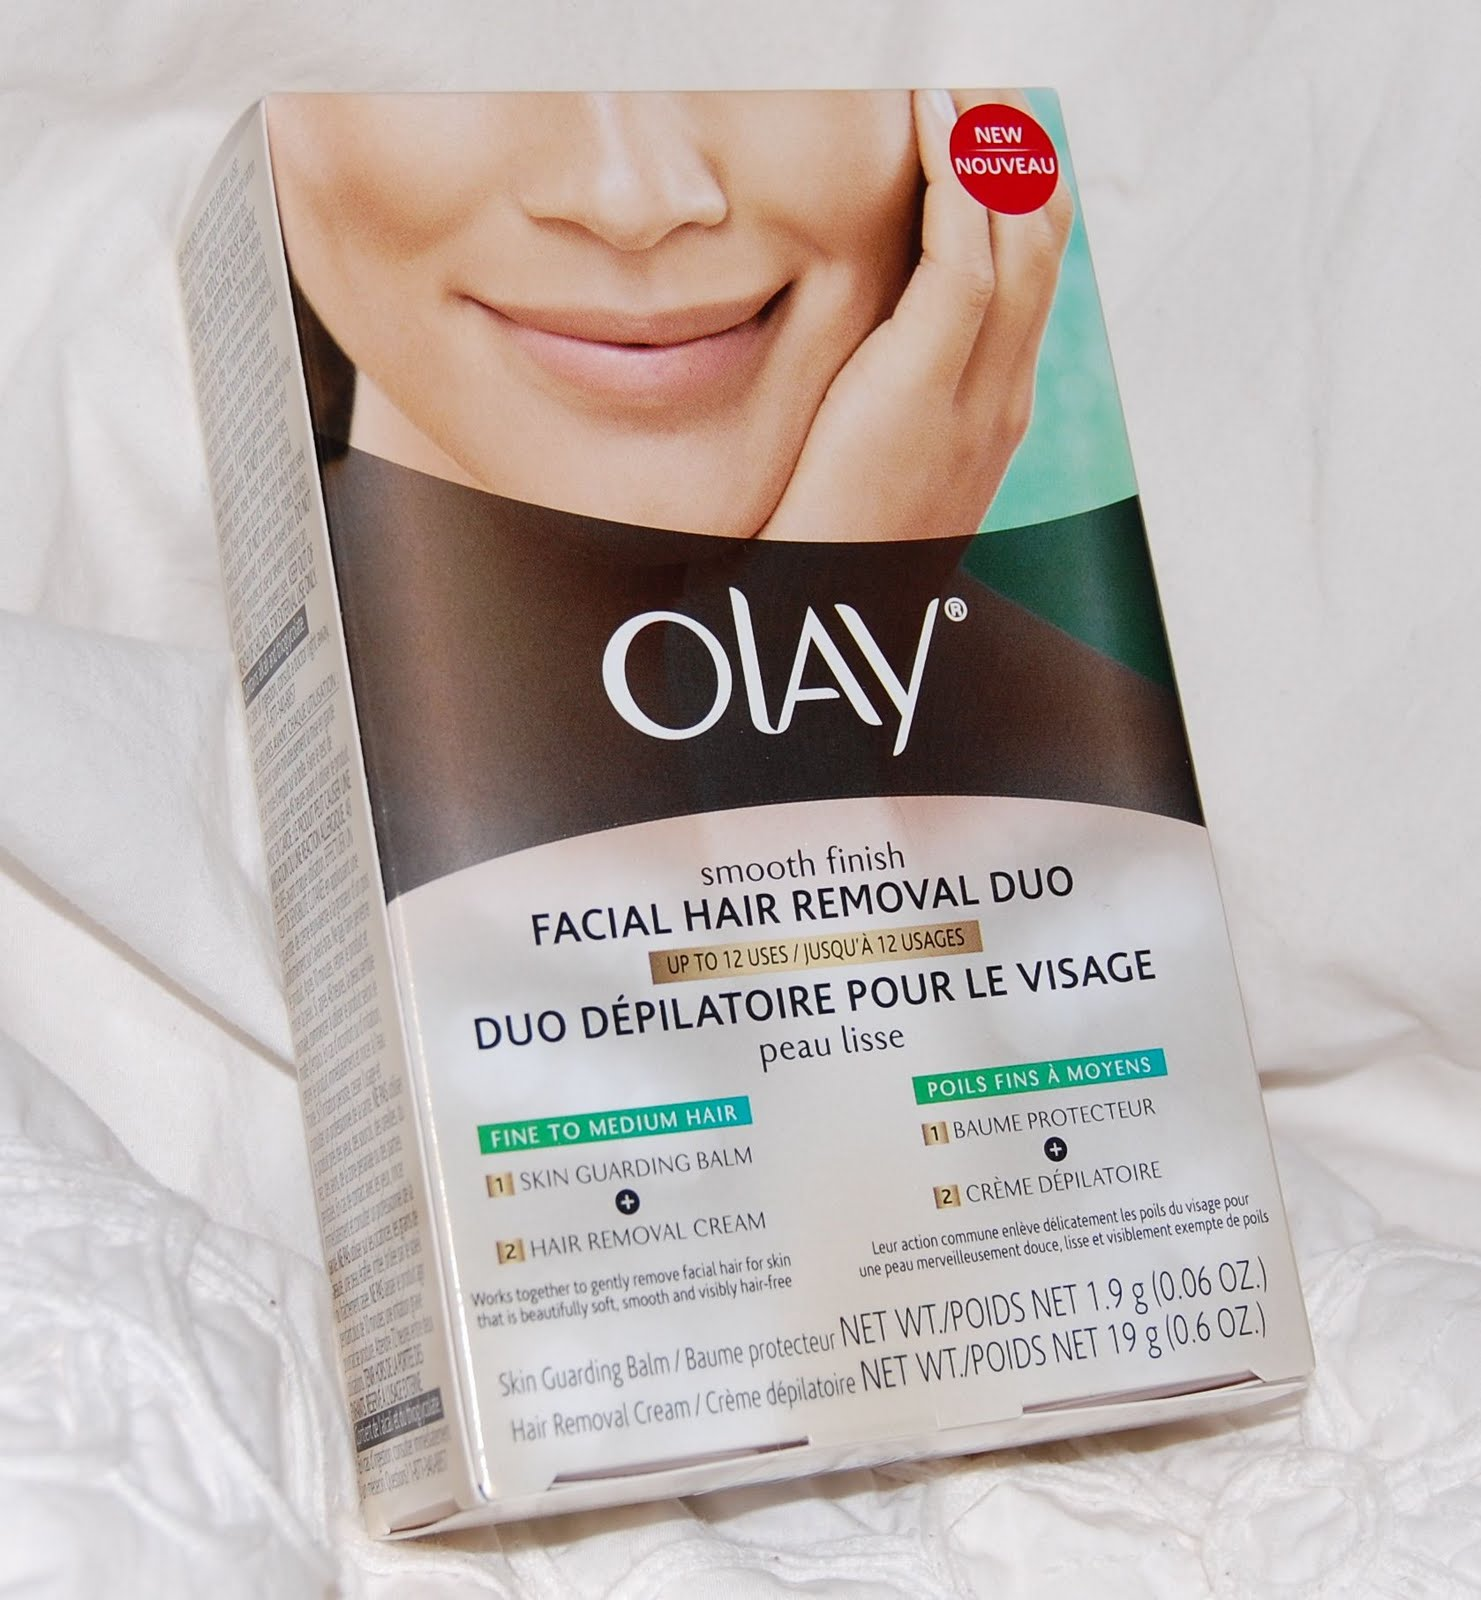 Beauty Squared Olay Smooth Finish Facial Hair Removal Duo Review